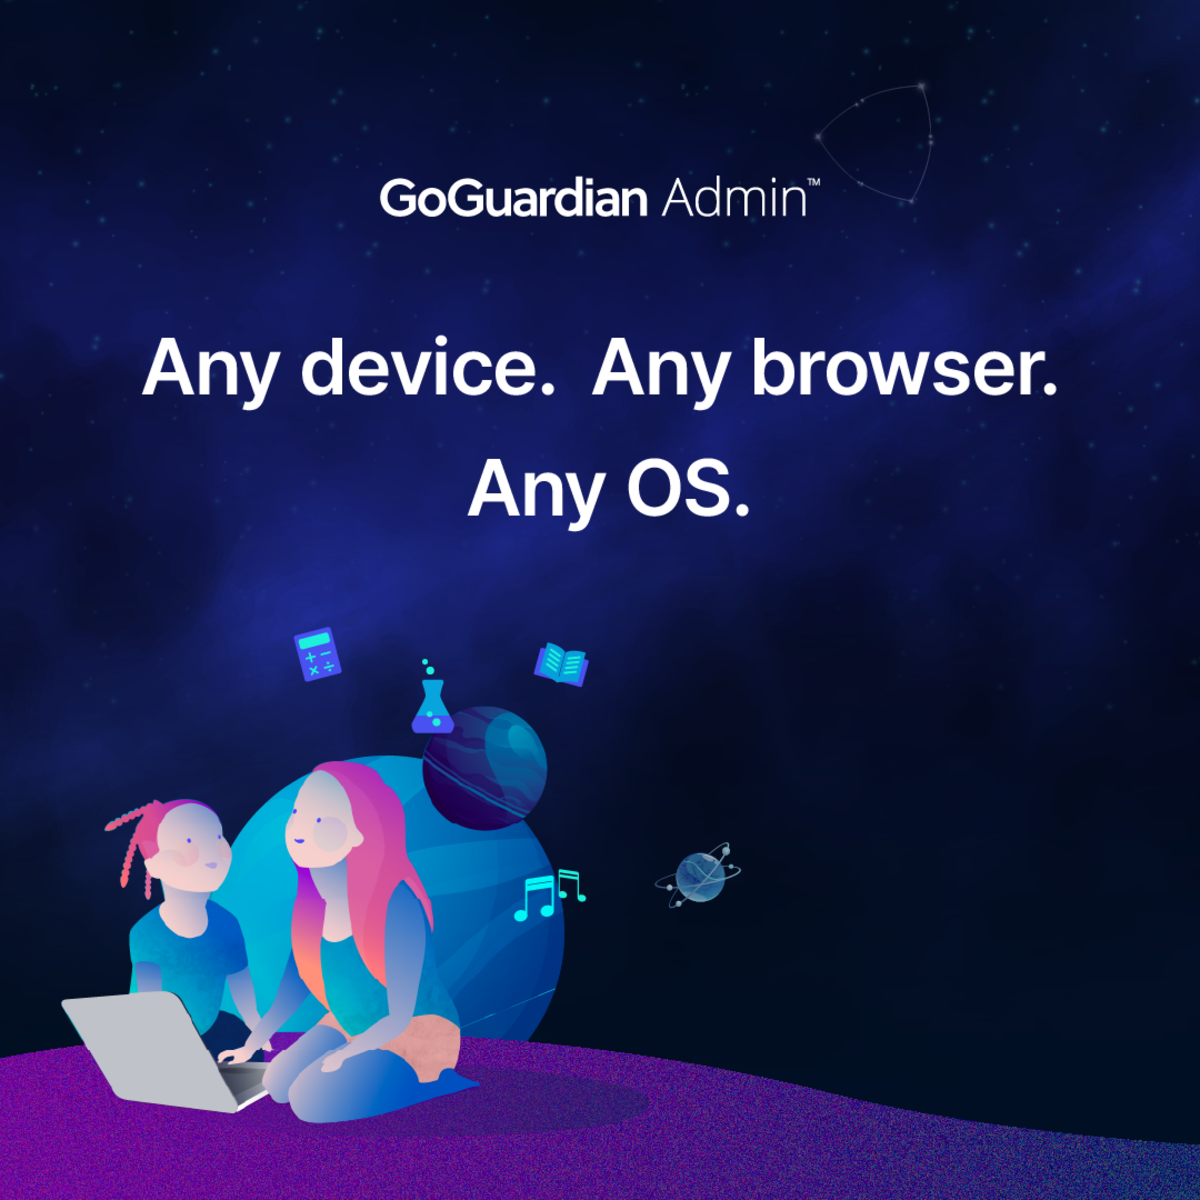 admin any device browser OS